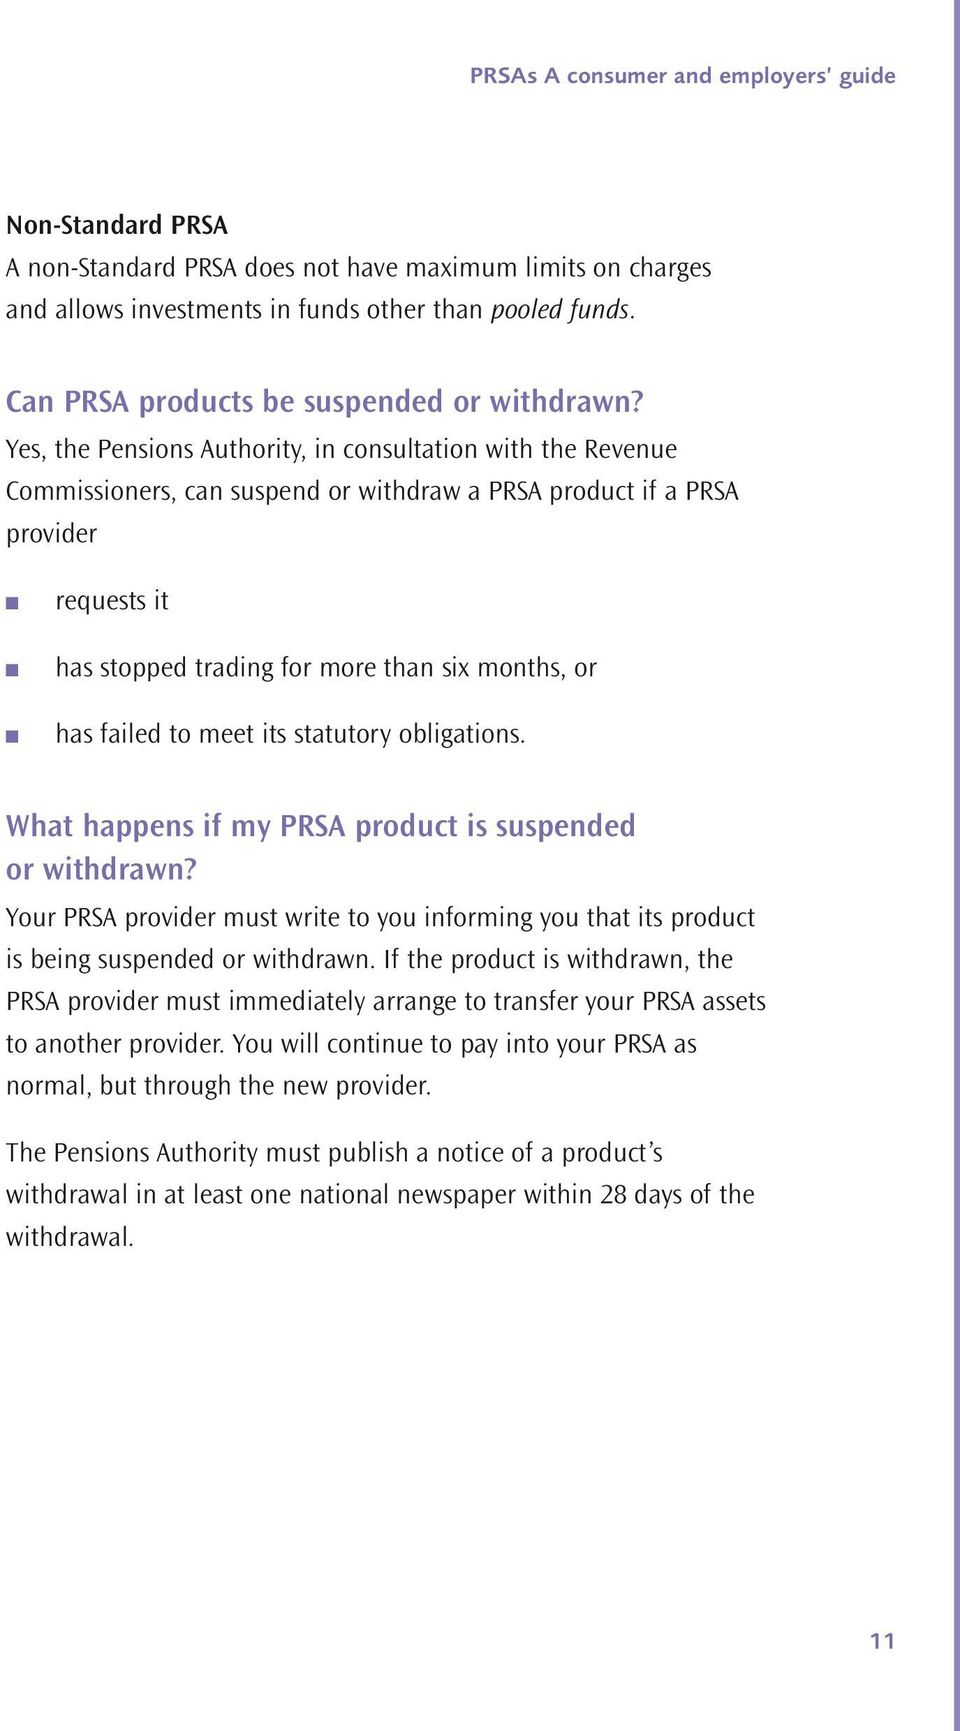 meet its statutory obligatios. What happes if my PRSA product is suspeded or withdraw? Your PRSA provider must write to you iformig you that its product is beig suspeded or withdraw.